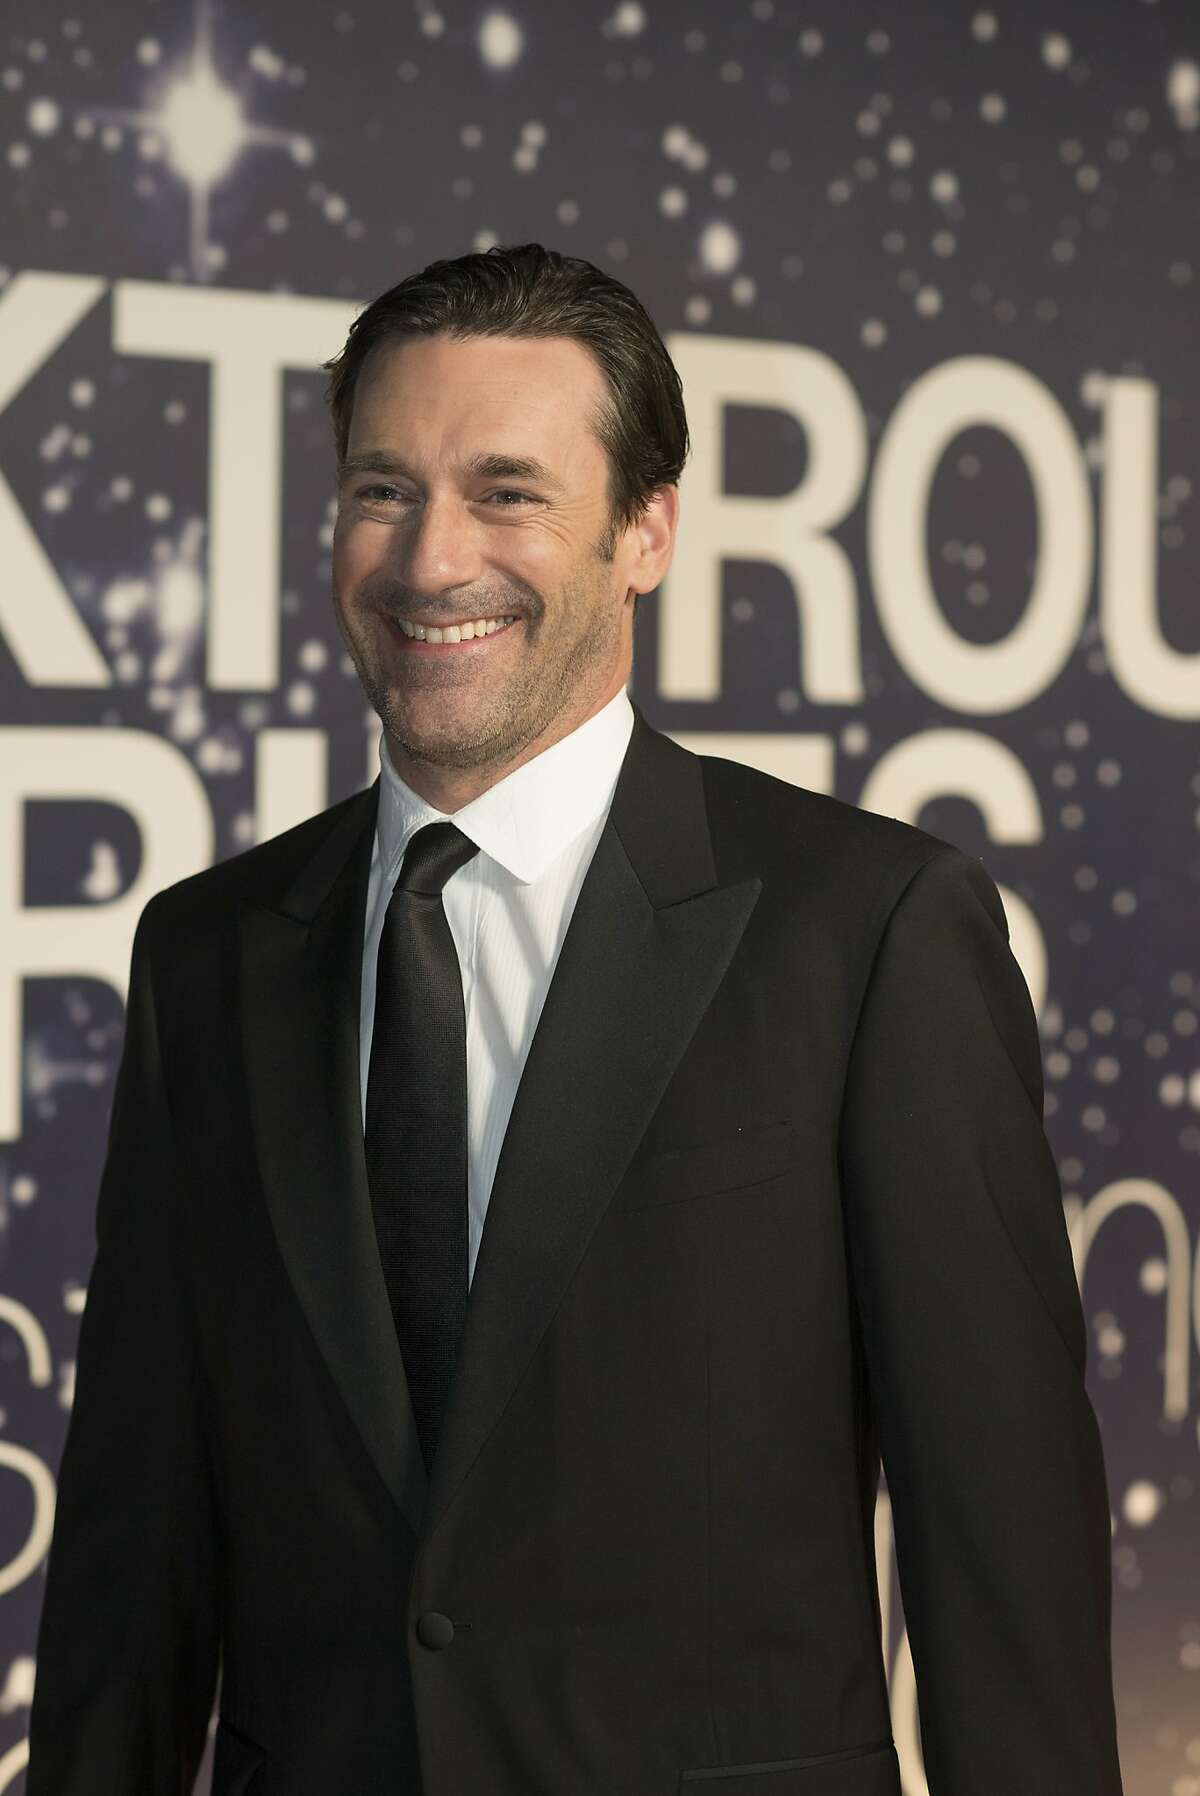 Jon Hamm arrives at the 2nd Annual Breakthrough Prize Award Ceremony at the NASA Ames Research Center on Sunday, Nov. 9, 2014 in Mountain View, California.